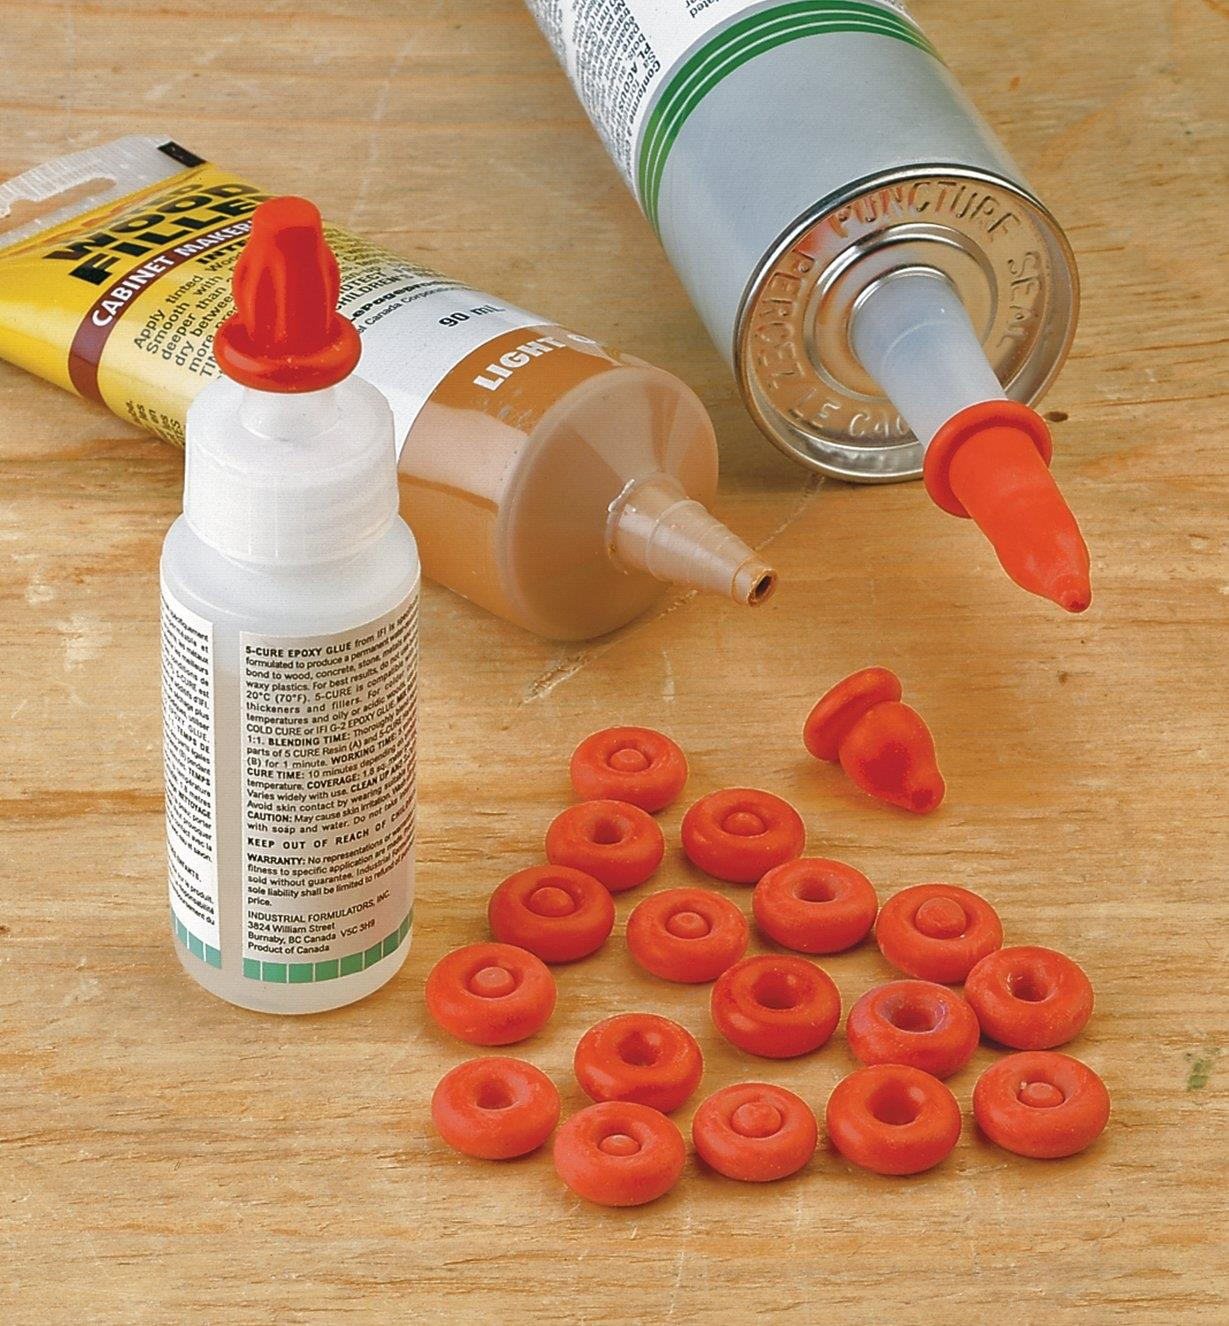 A caulking tube, a wood filer tube and a glue bottle using nozzle caps to seal their nozzles